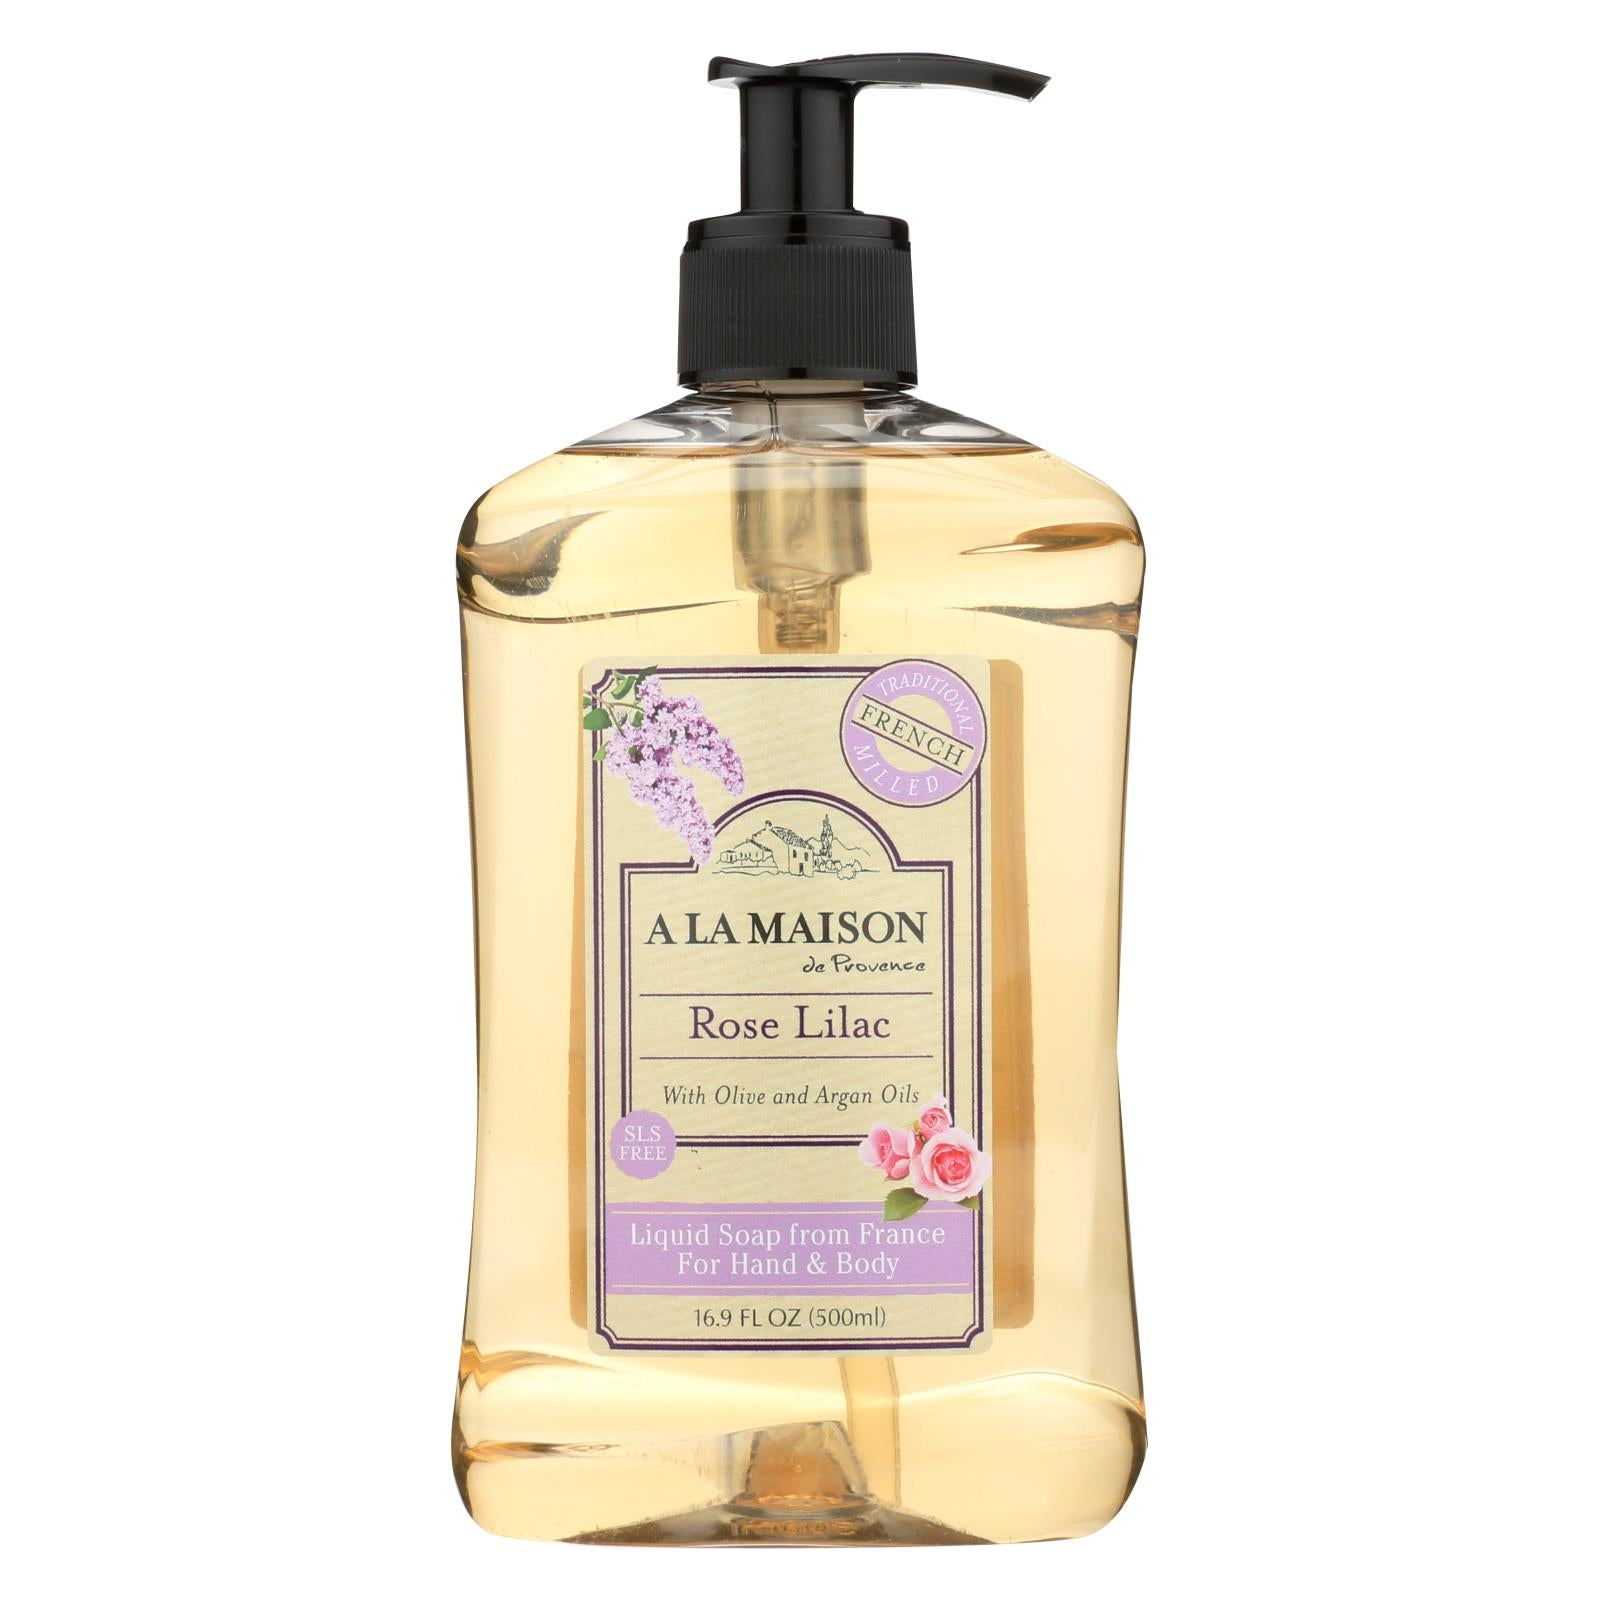 Buy A La Maison Liquid Hand Soap - Rose Lilac - 16.9 fl oz. - Liquid Hand Soap from Veroeco.com